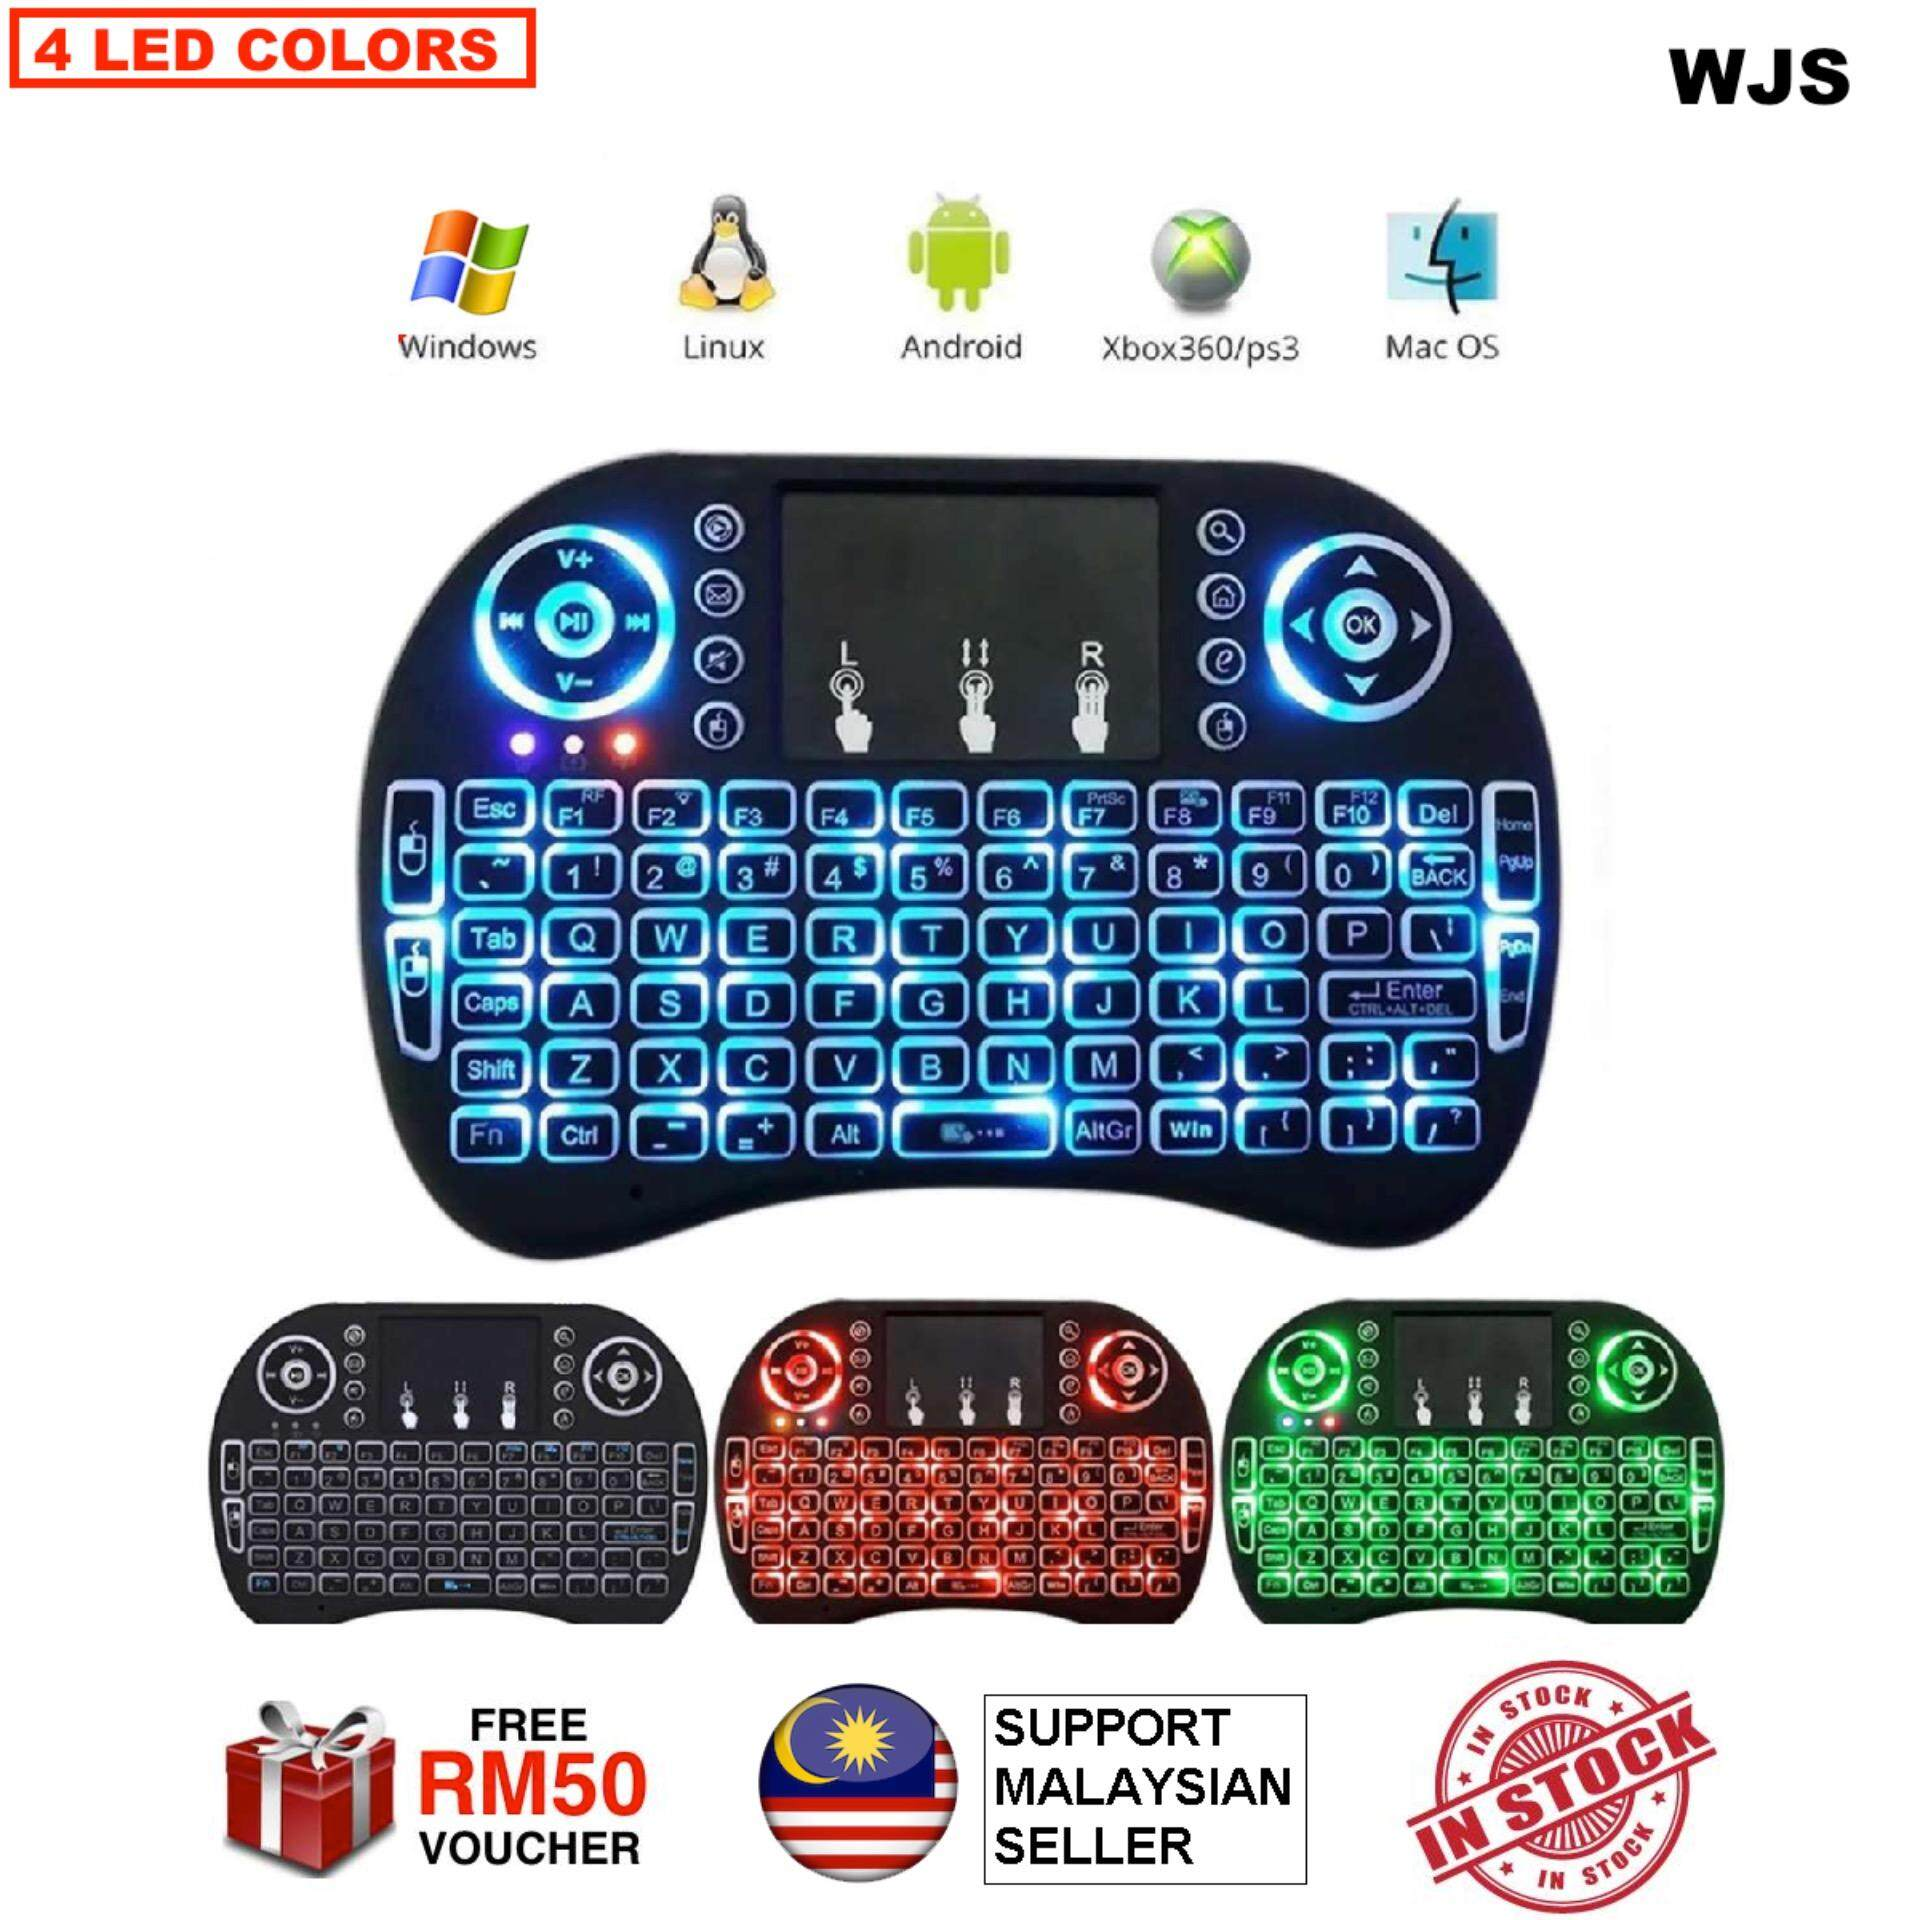 (FREE KEYBOARD BATTERY) WJS I8 Mini 2.4Ghz Wireless Touchpad Keyboard With Mouse For Pc, Tablets, Xbox, Playstation, Google Android Tv Box, Htpc, Iptv (Black) Malaysia